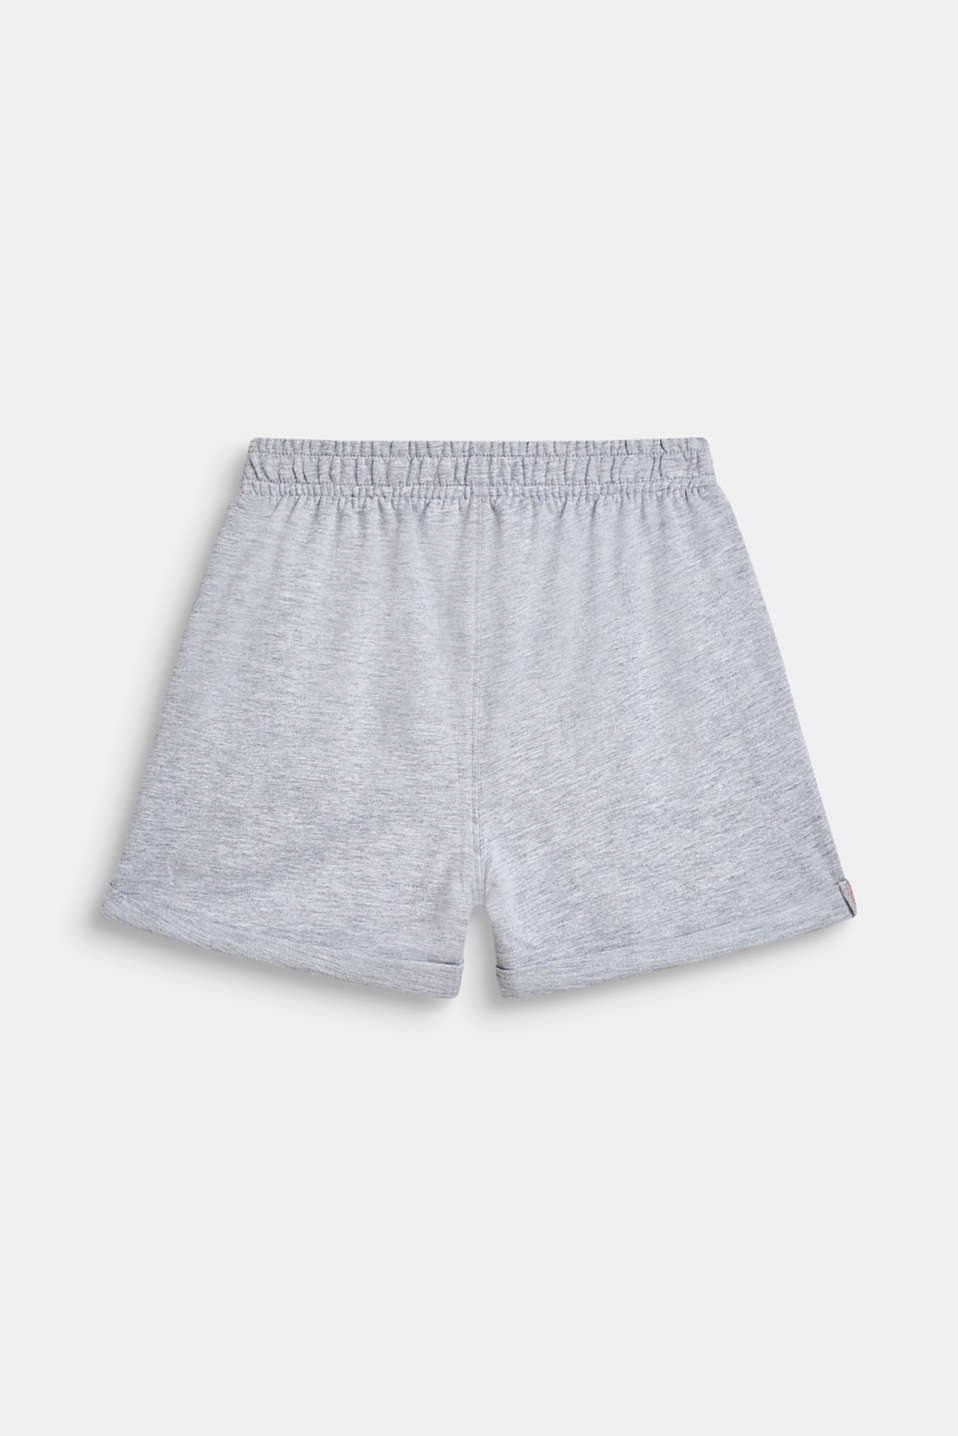 Blended cotton sweat shorts, LCHEATHER SILVER, detail image number 1